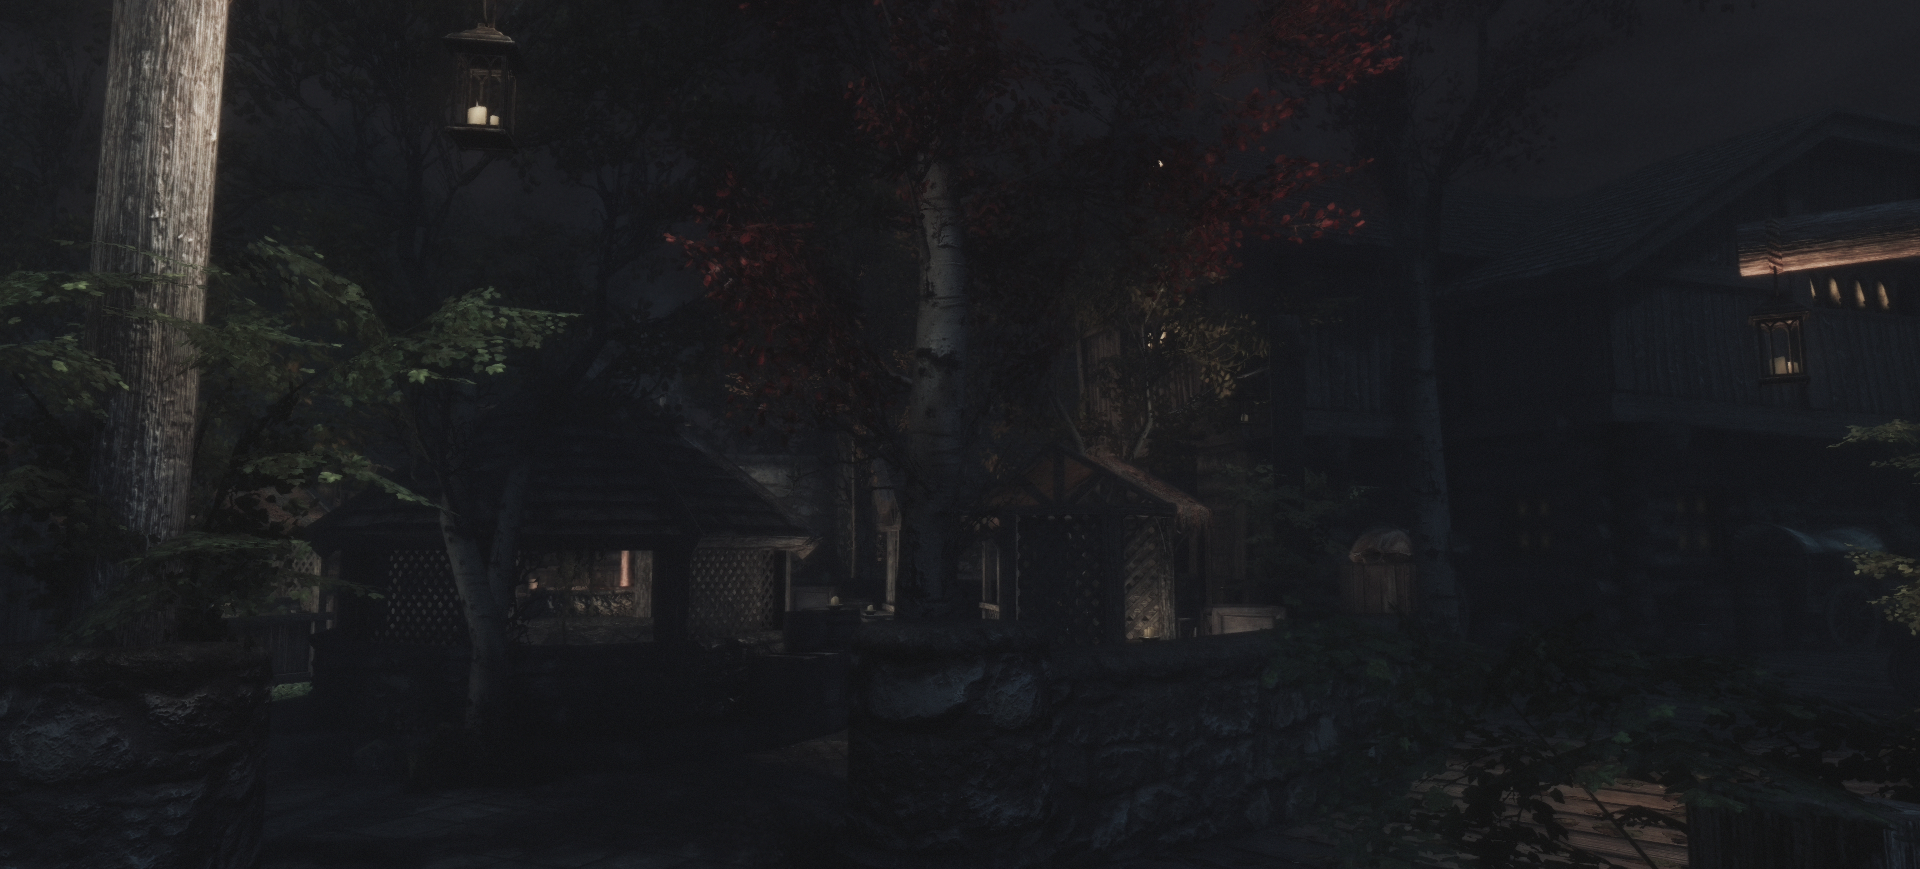 riften night shot